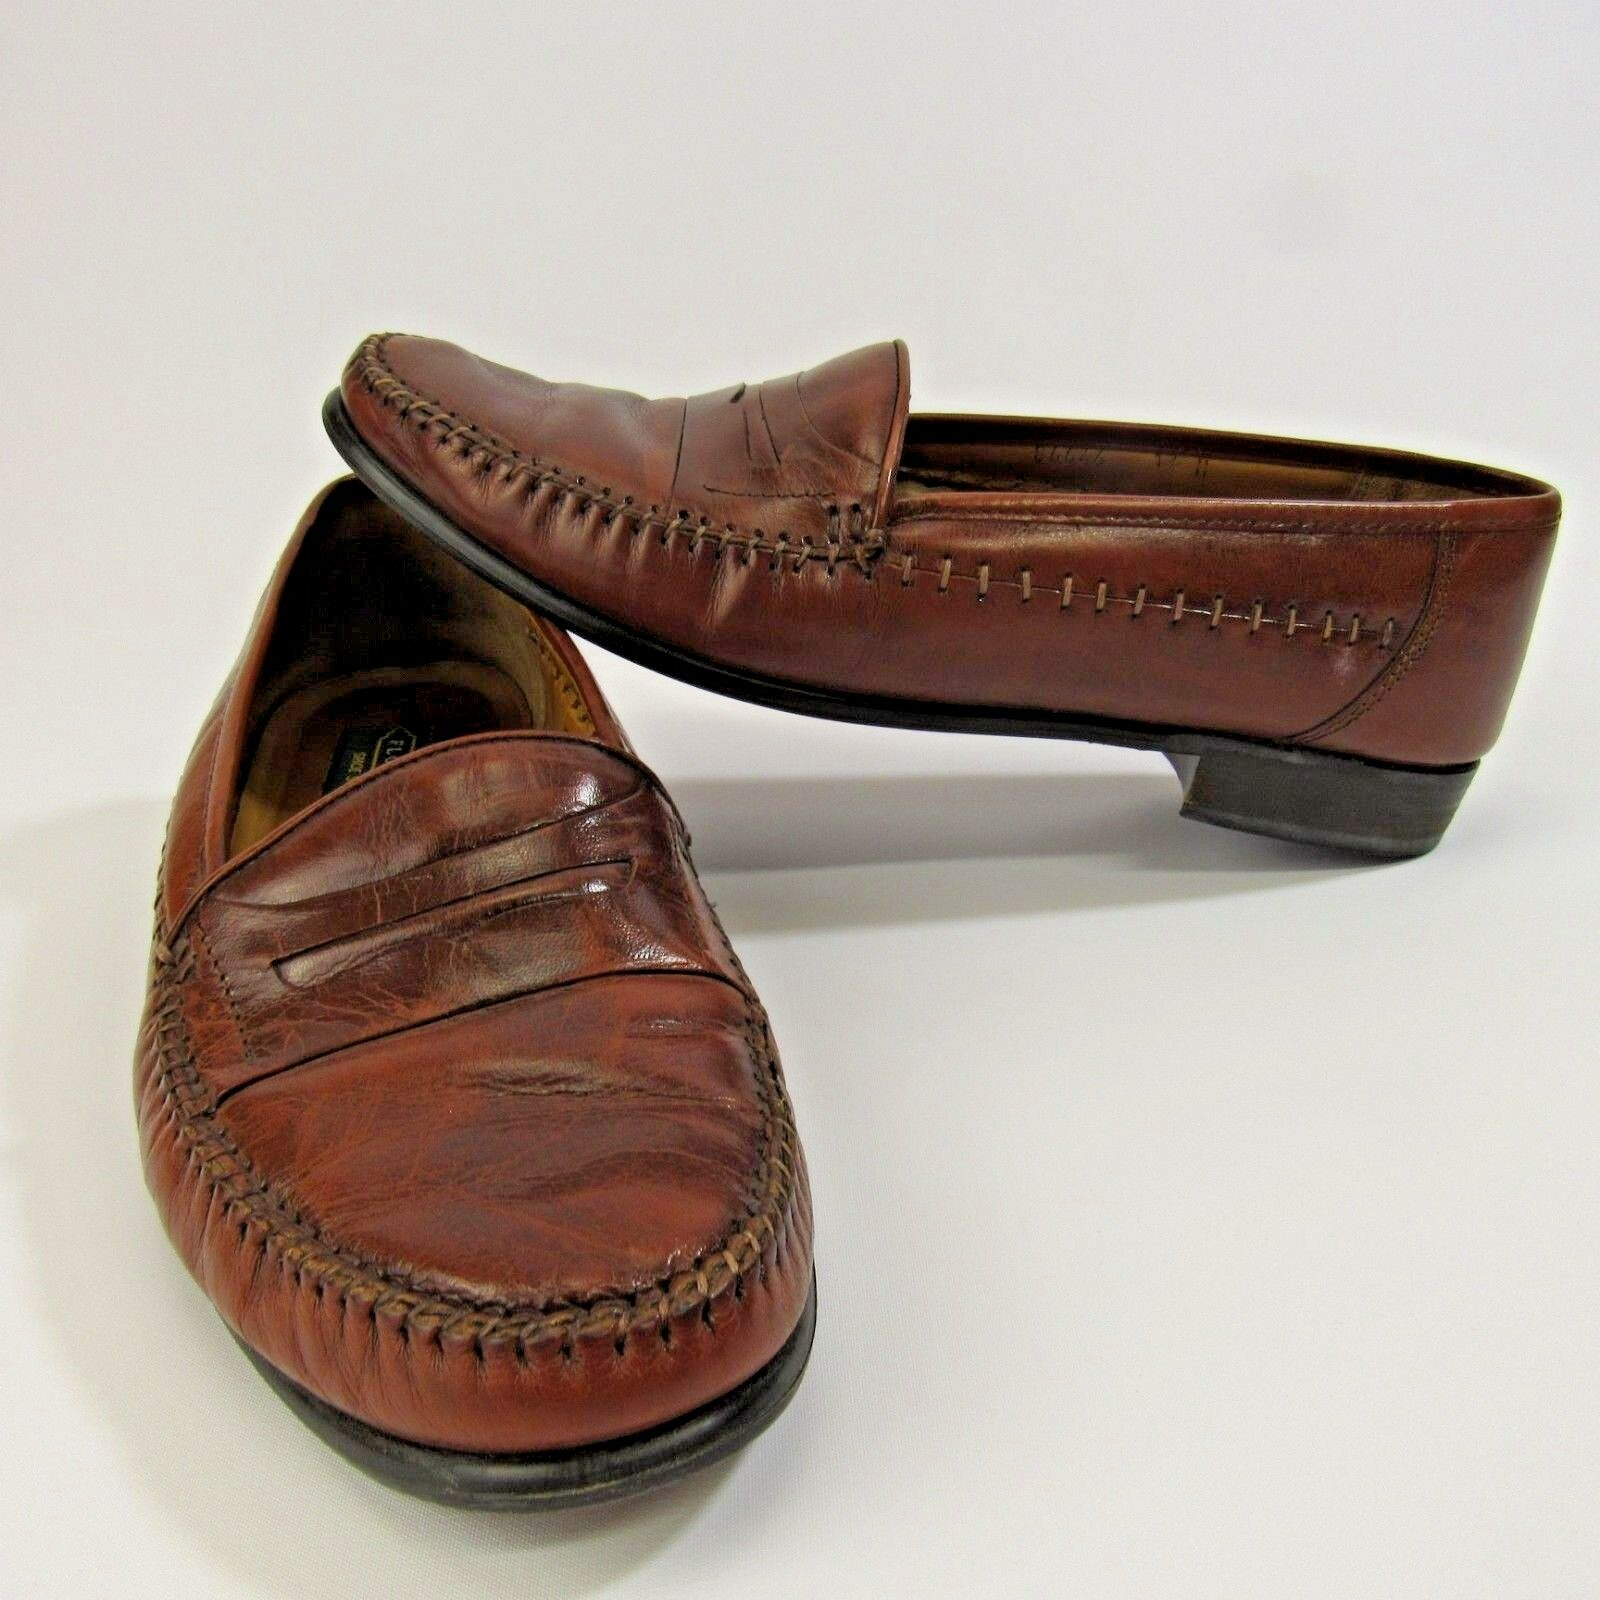 Florsheim Leather shoes Men's Size 11 Penny Loafers Oxfords Brown